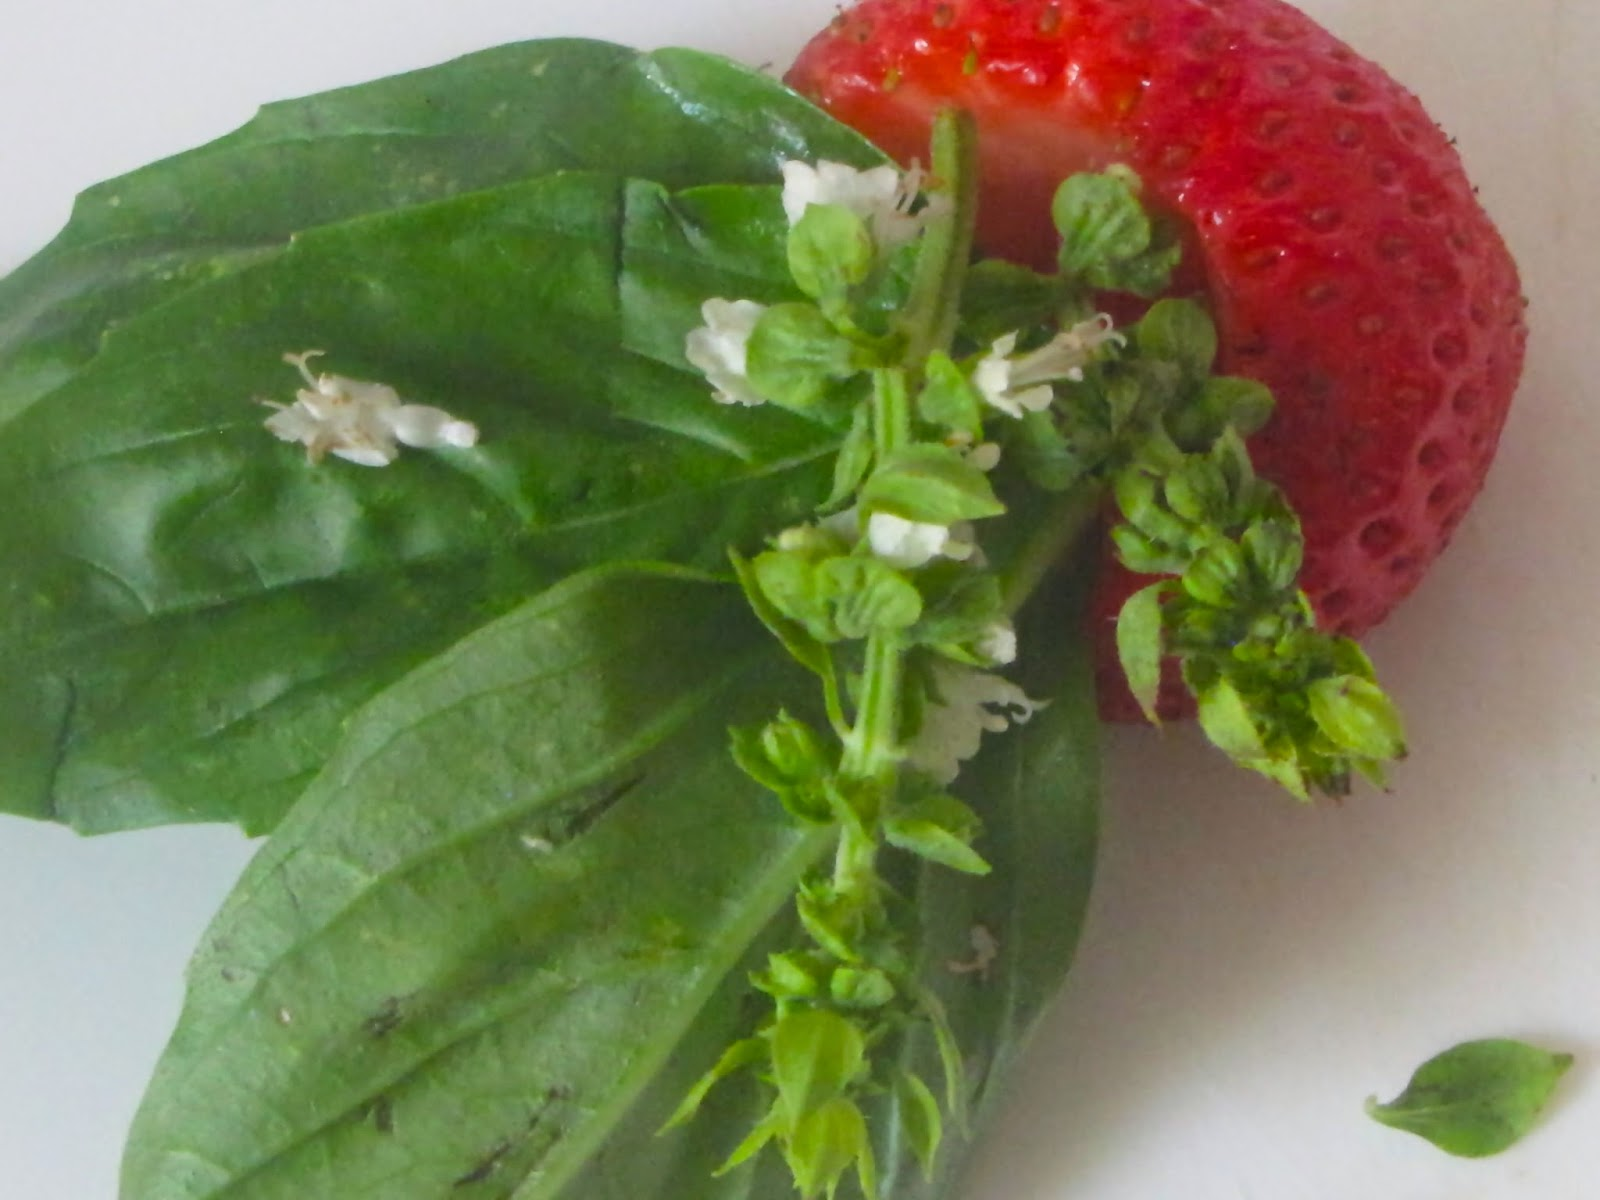 A hulled strawberry holding basil flowers and leaves